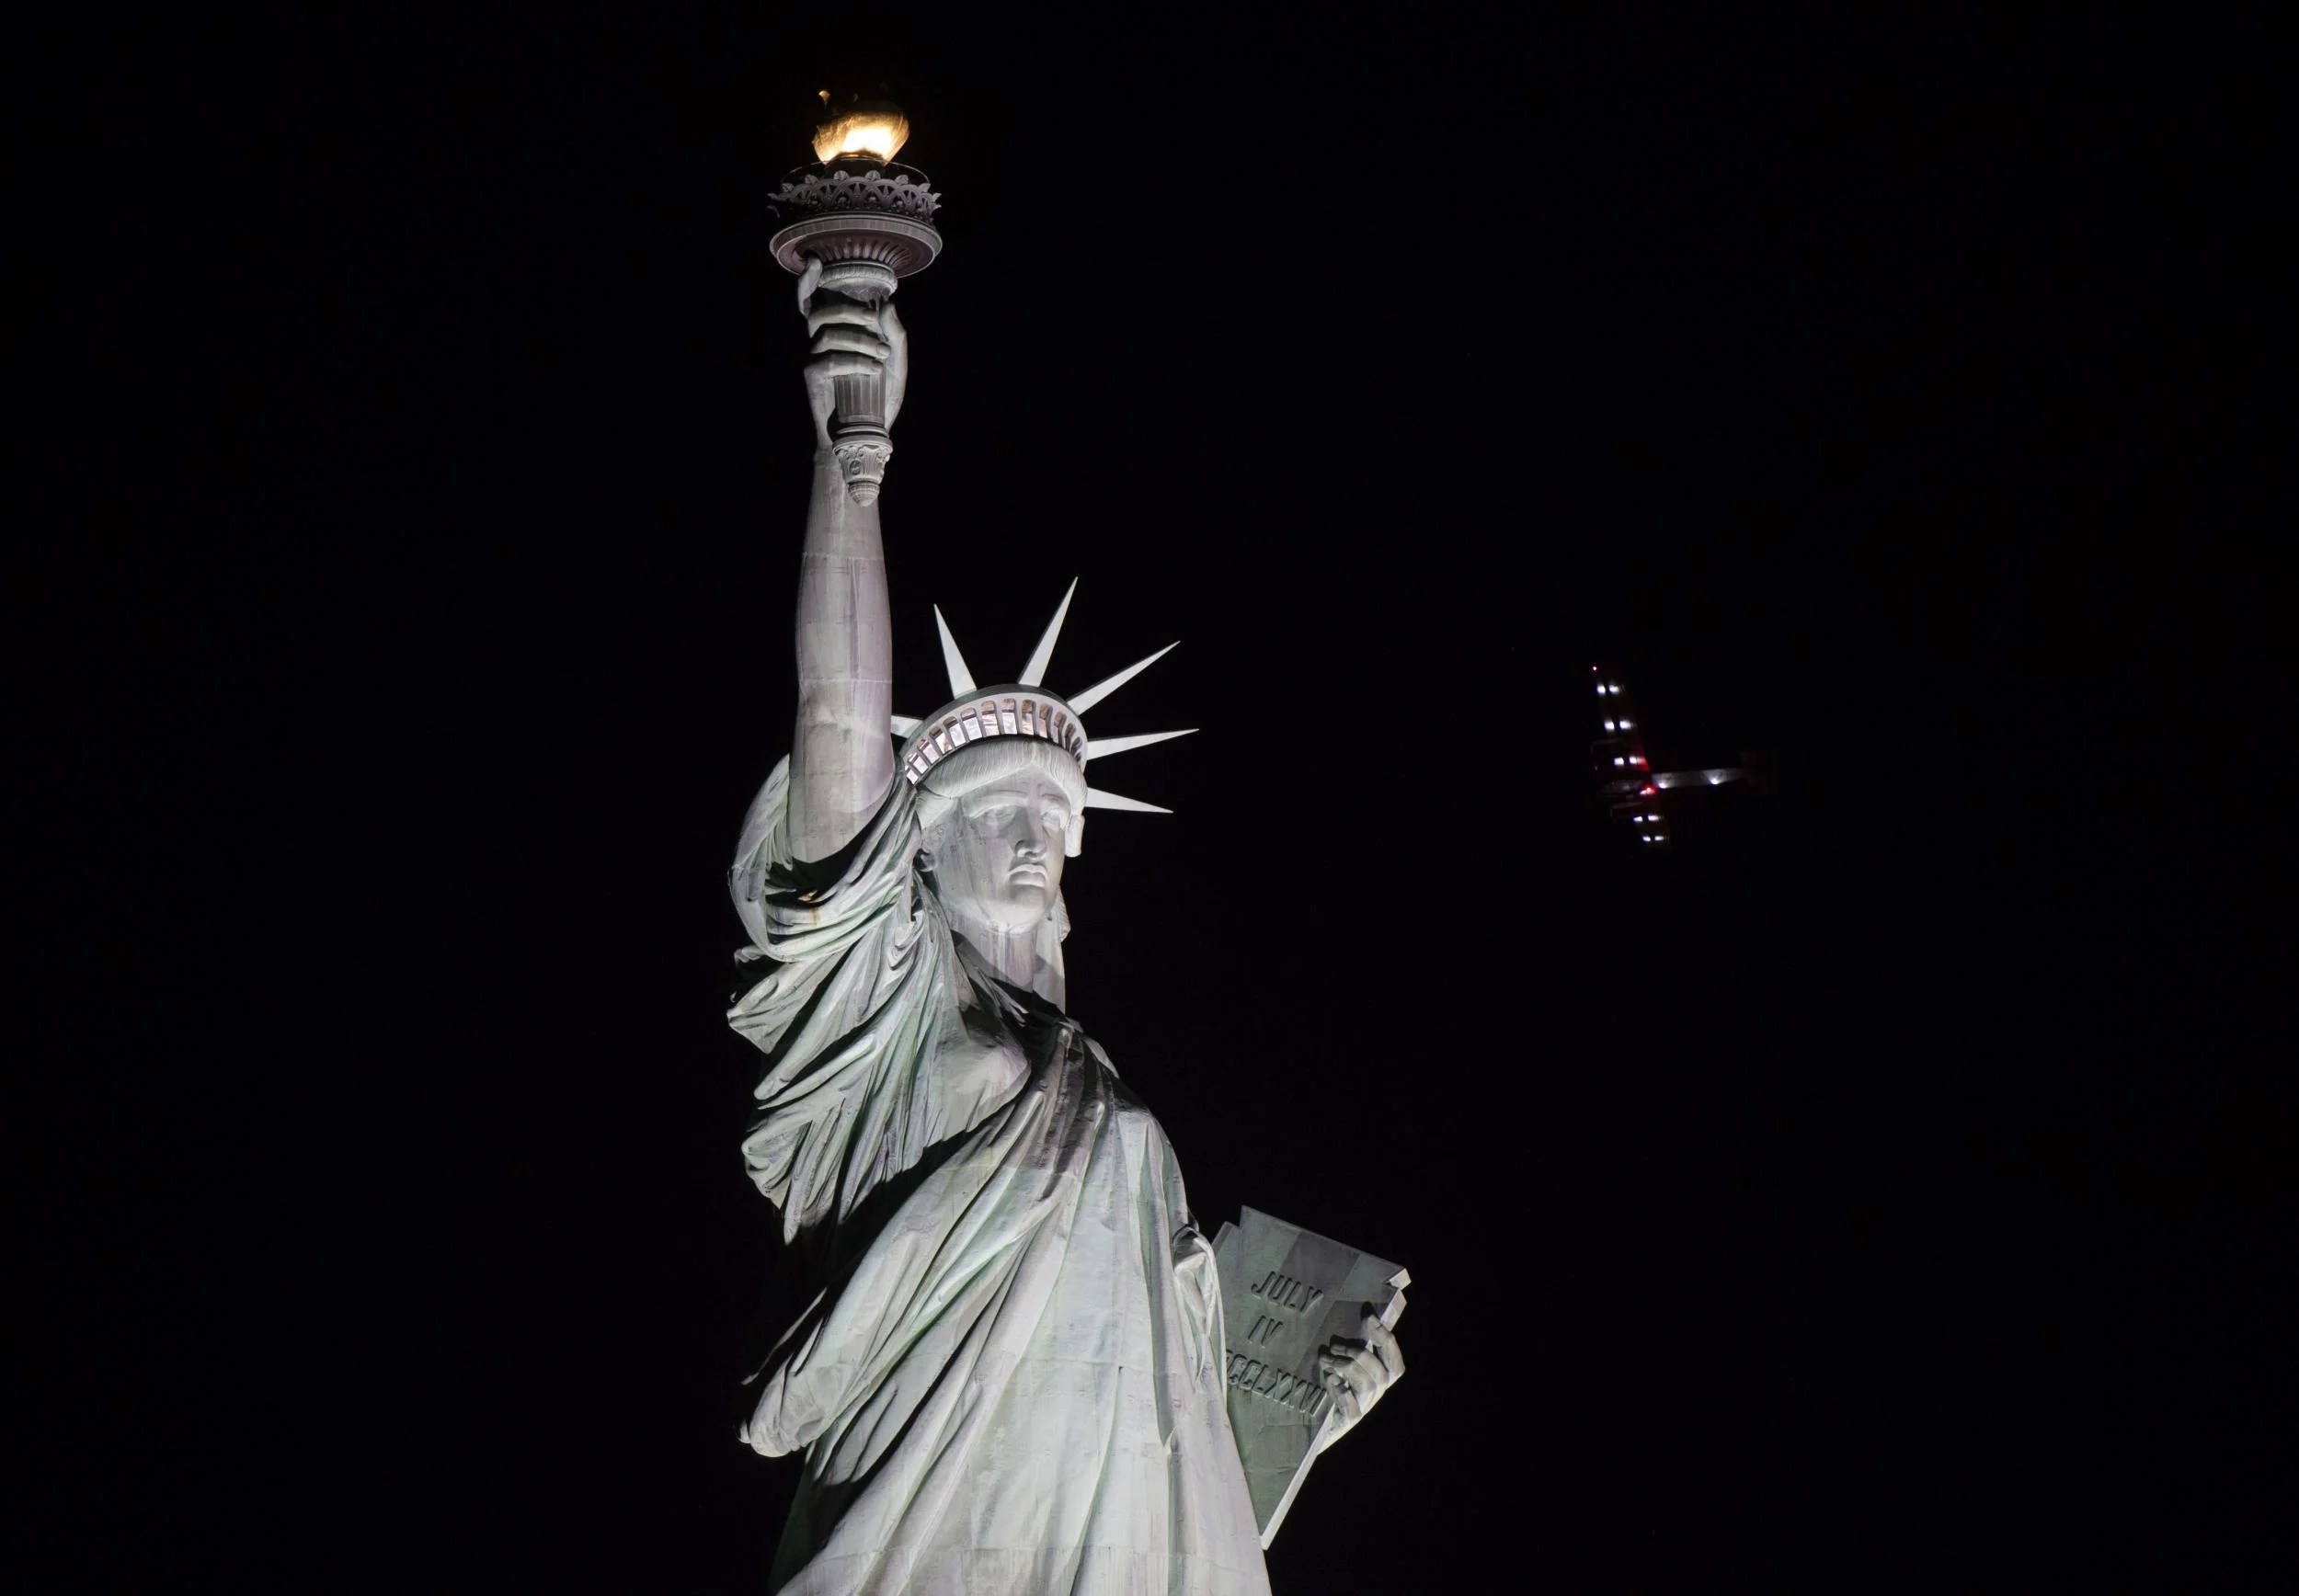 Statue Of Liberty Goes Dark In Unplanned Outage As Women S March Campaigners Claim Show Of